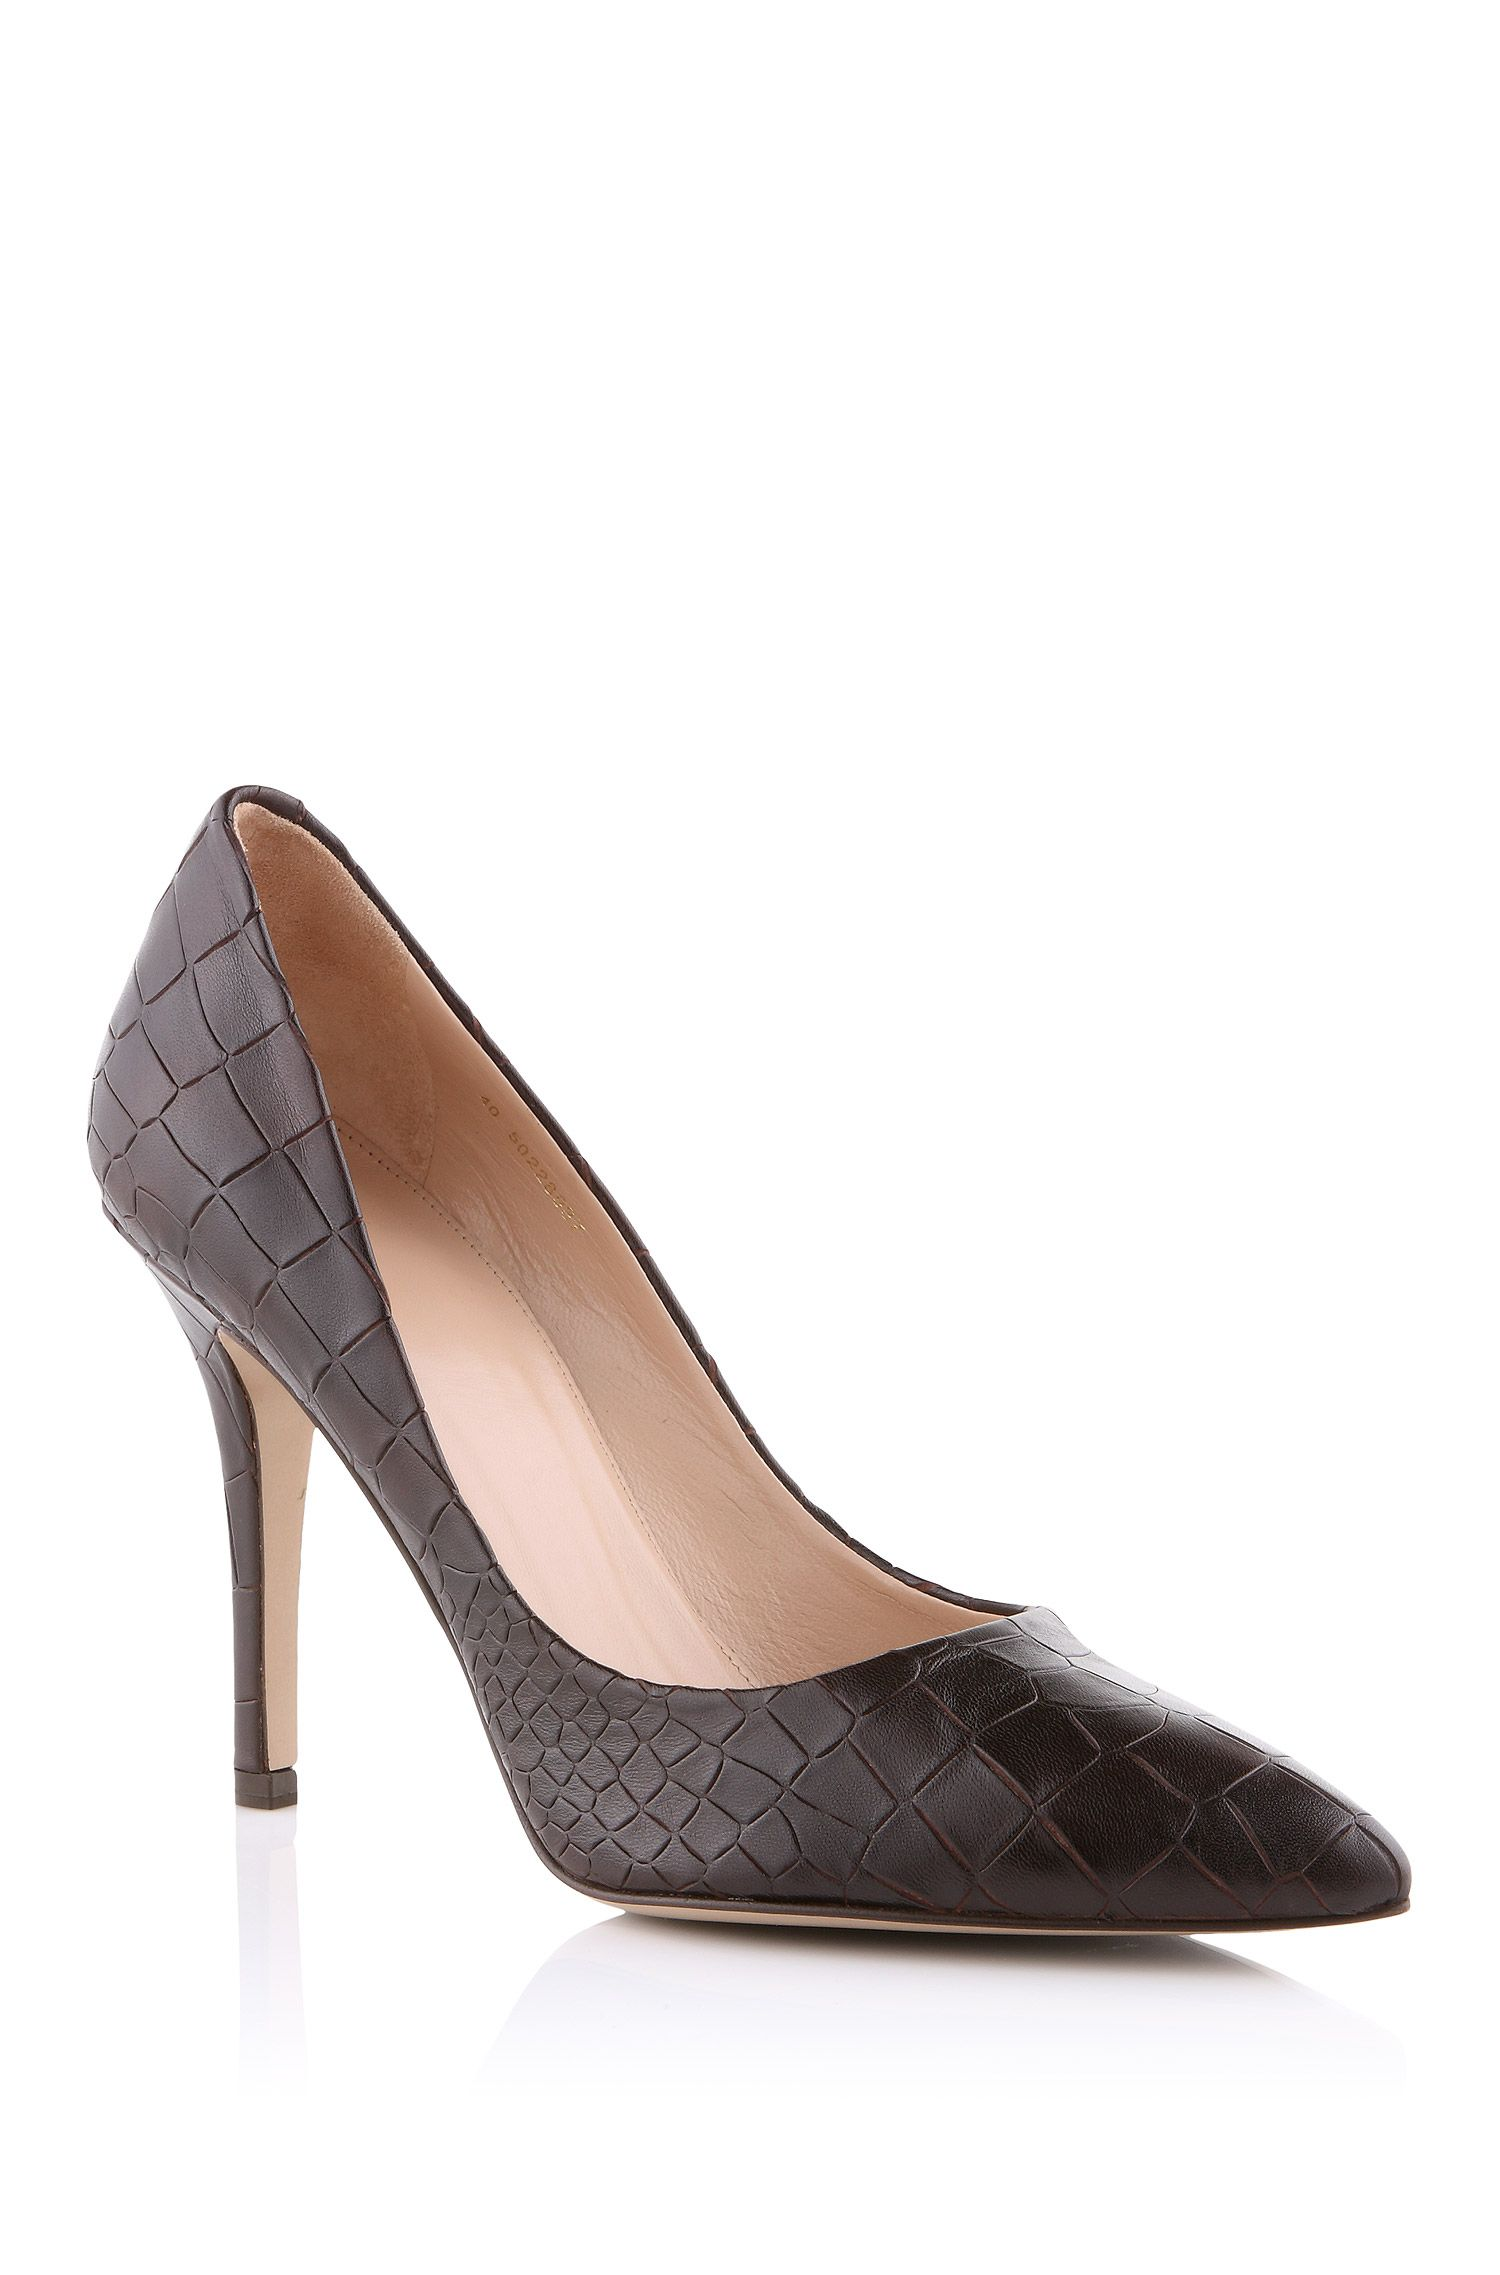 Embossed crocodile pattern court shoe 'Claudy'